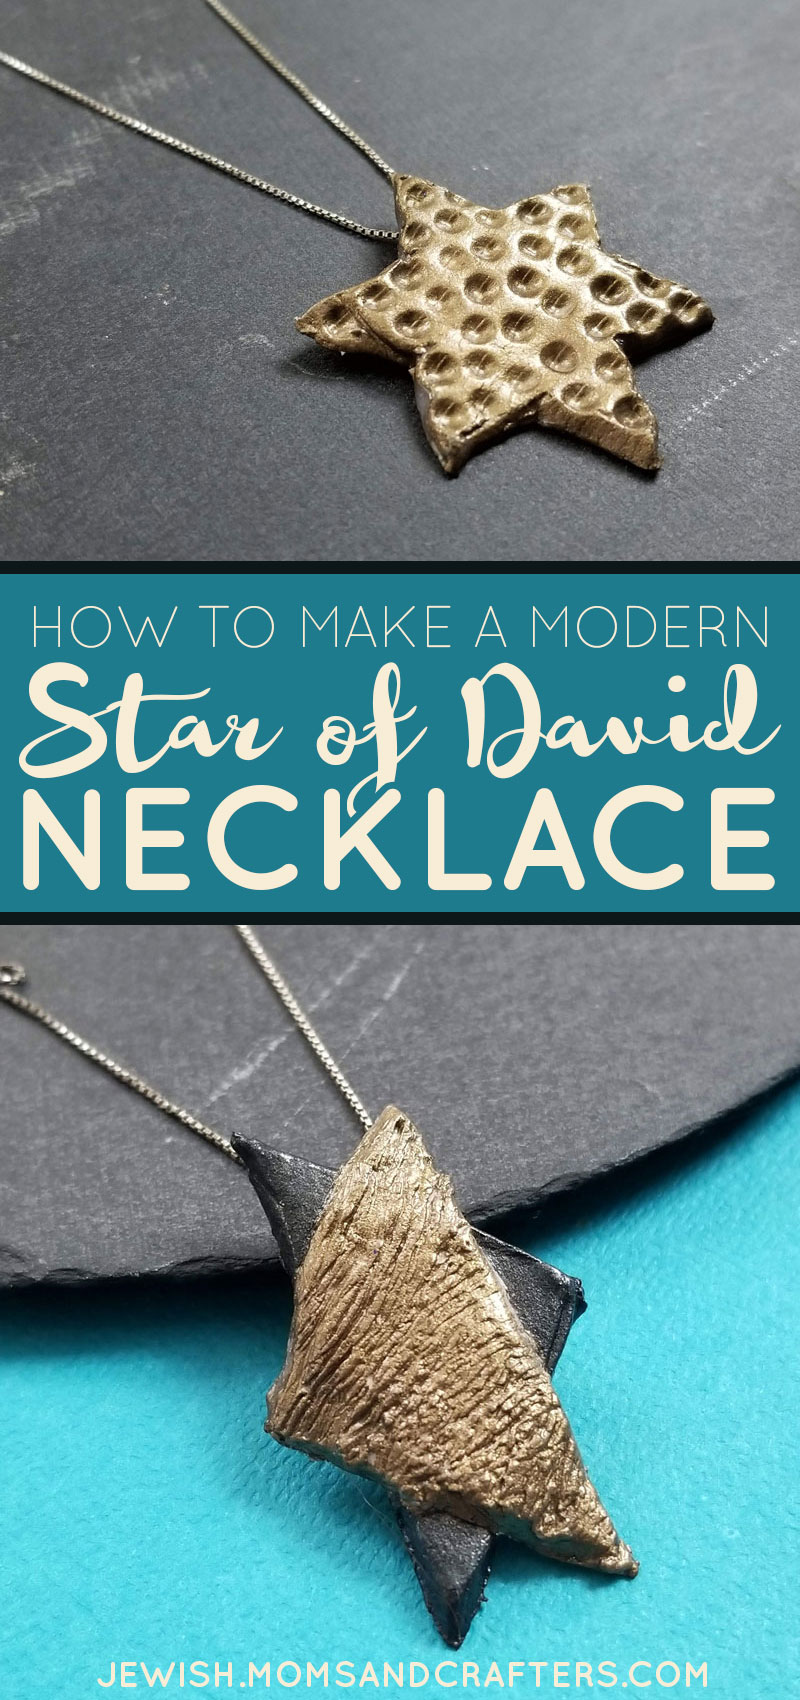 Click to learn how to make a DIY star of david necklace craft! This super easy Chanukah craft is also a fun Jewish craft for adults for year round. It makes a great easy DIY Hanukkah gift and is an easy beginner clay jewelry making project.